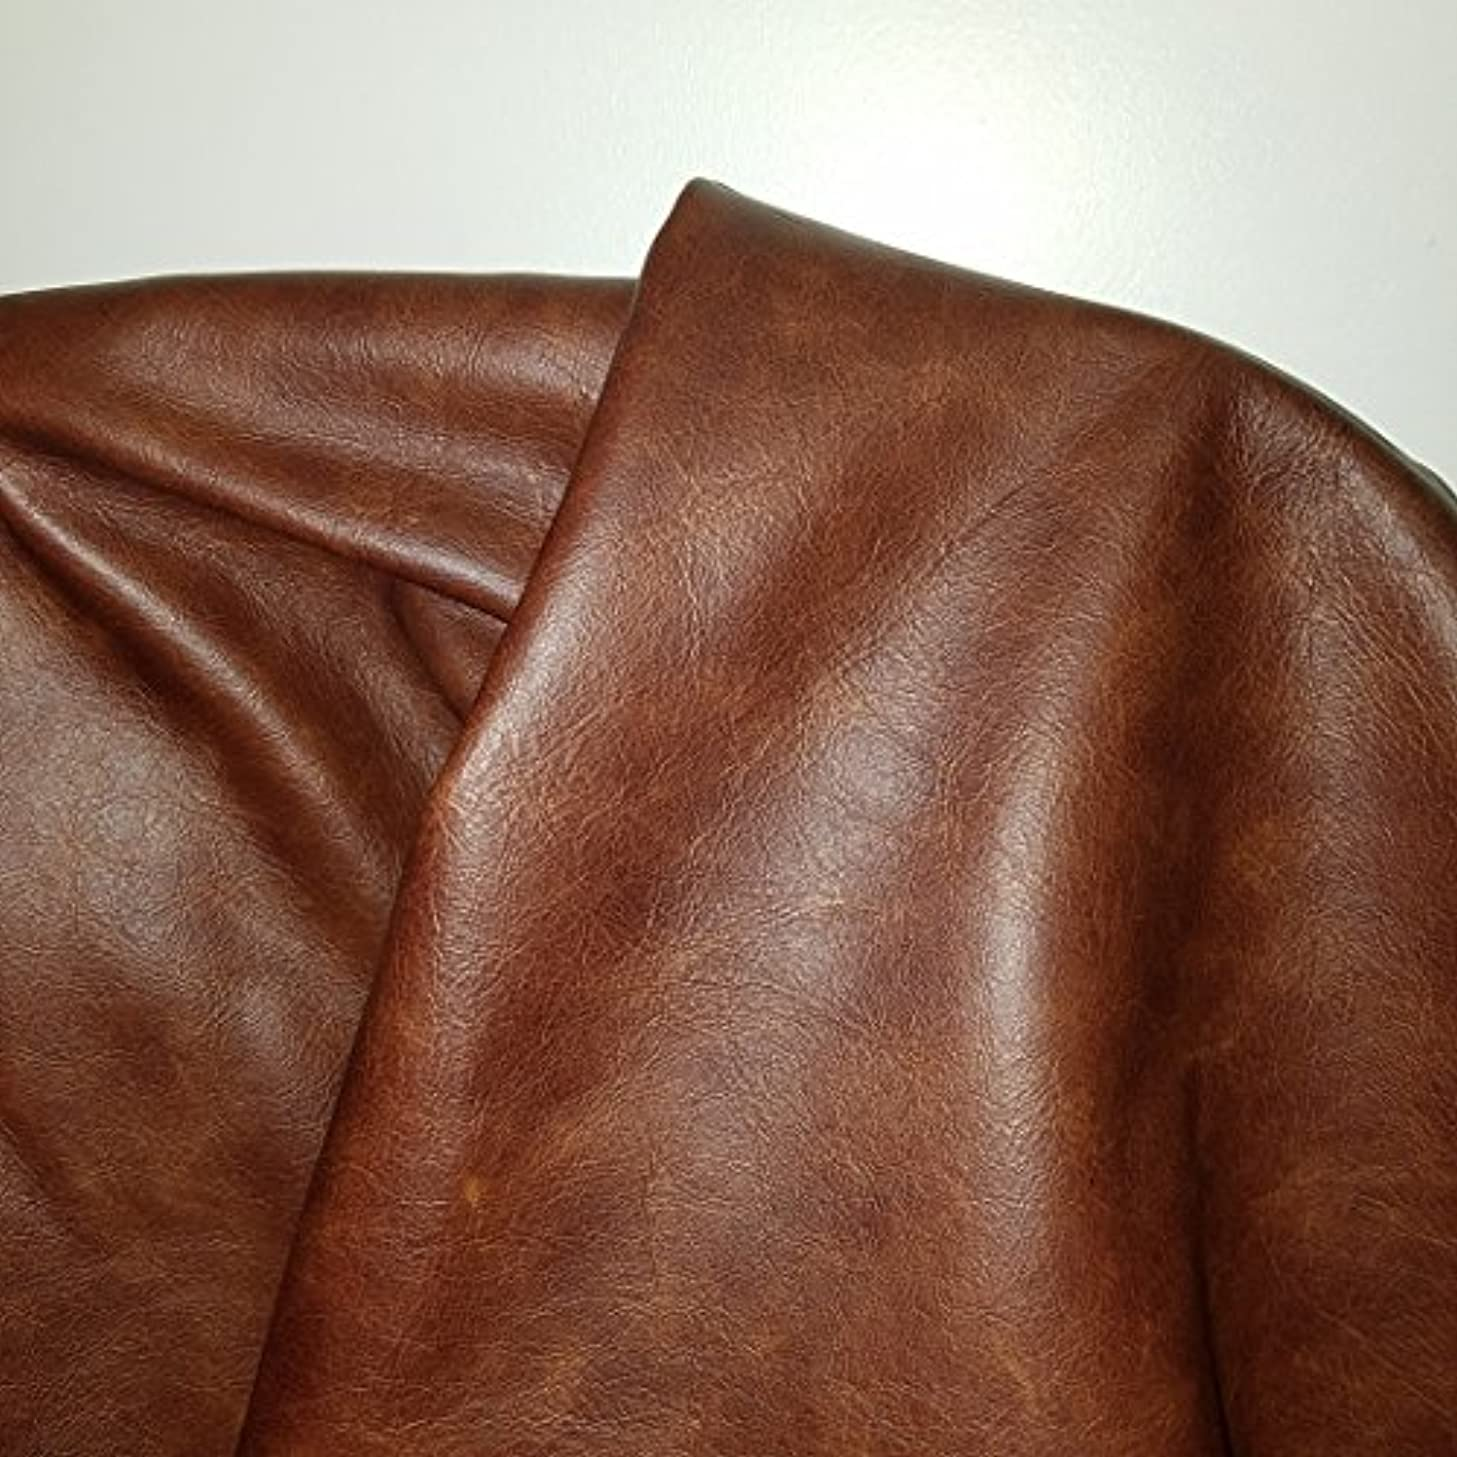 NAT Leathers Brown Cognac Weekender Two Tone Soft Upholstery Chap Cowhide Genuine Leather Hide Skin 1 Square Feet (12